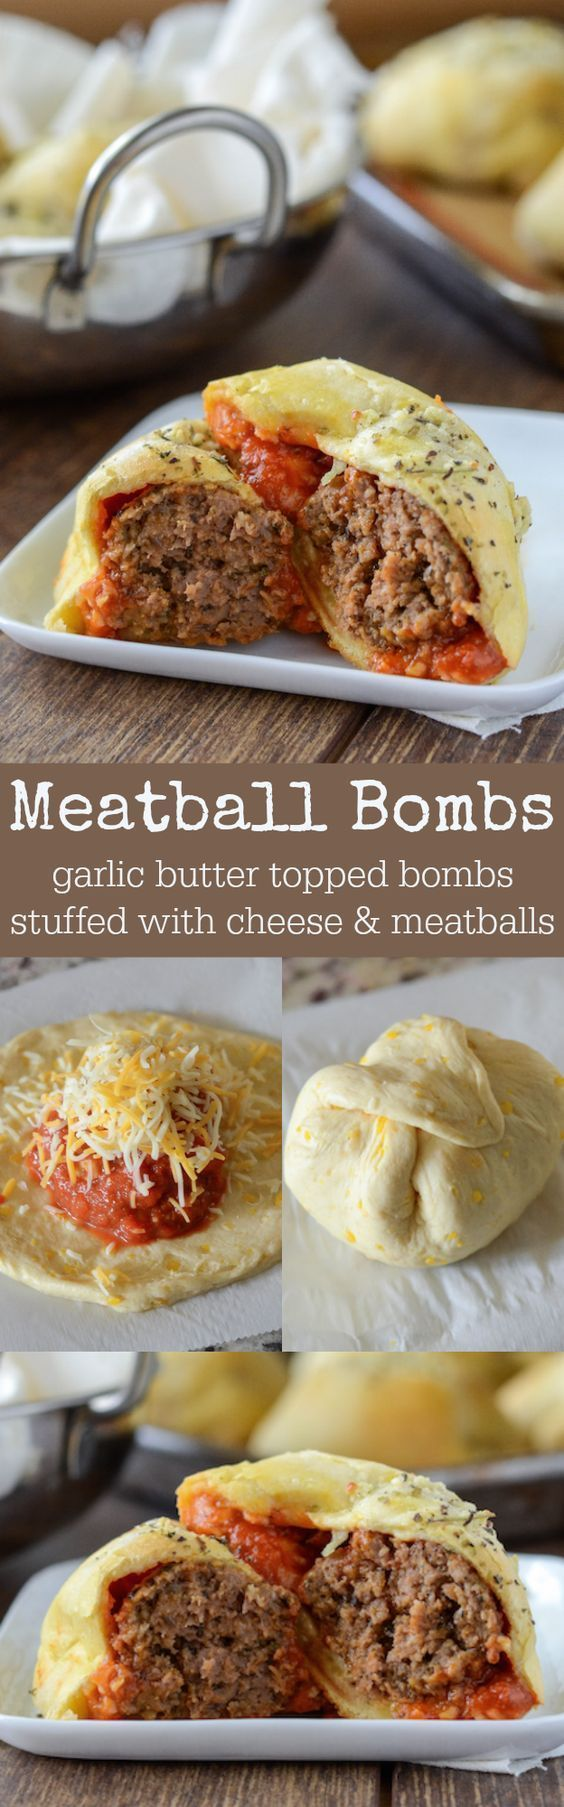 The BEST 30 Minute Meals Recipes – Easy, Quick and Delicious Family Friendly Lunch and Dinner Ideas – Dreaming in DIY